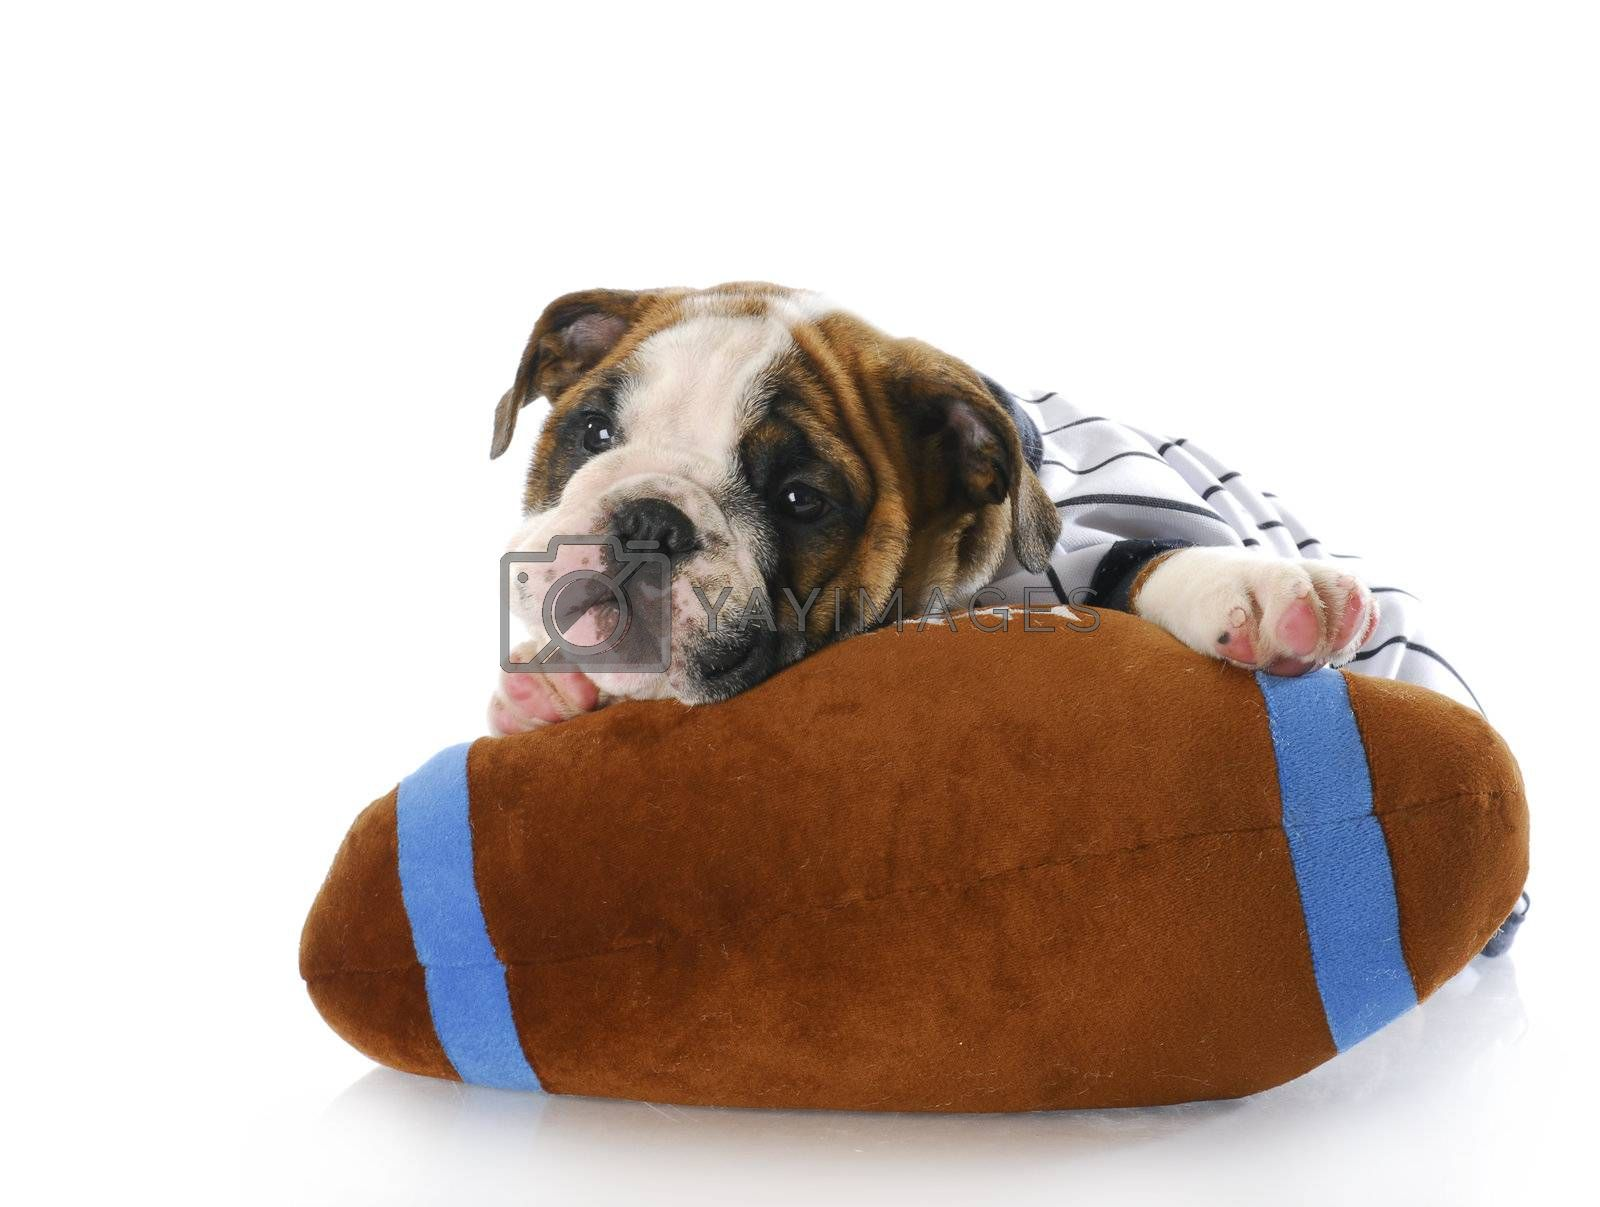 adorable eight week old english bulldog puppy laying with stuffed football with reflection on white background